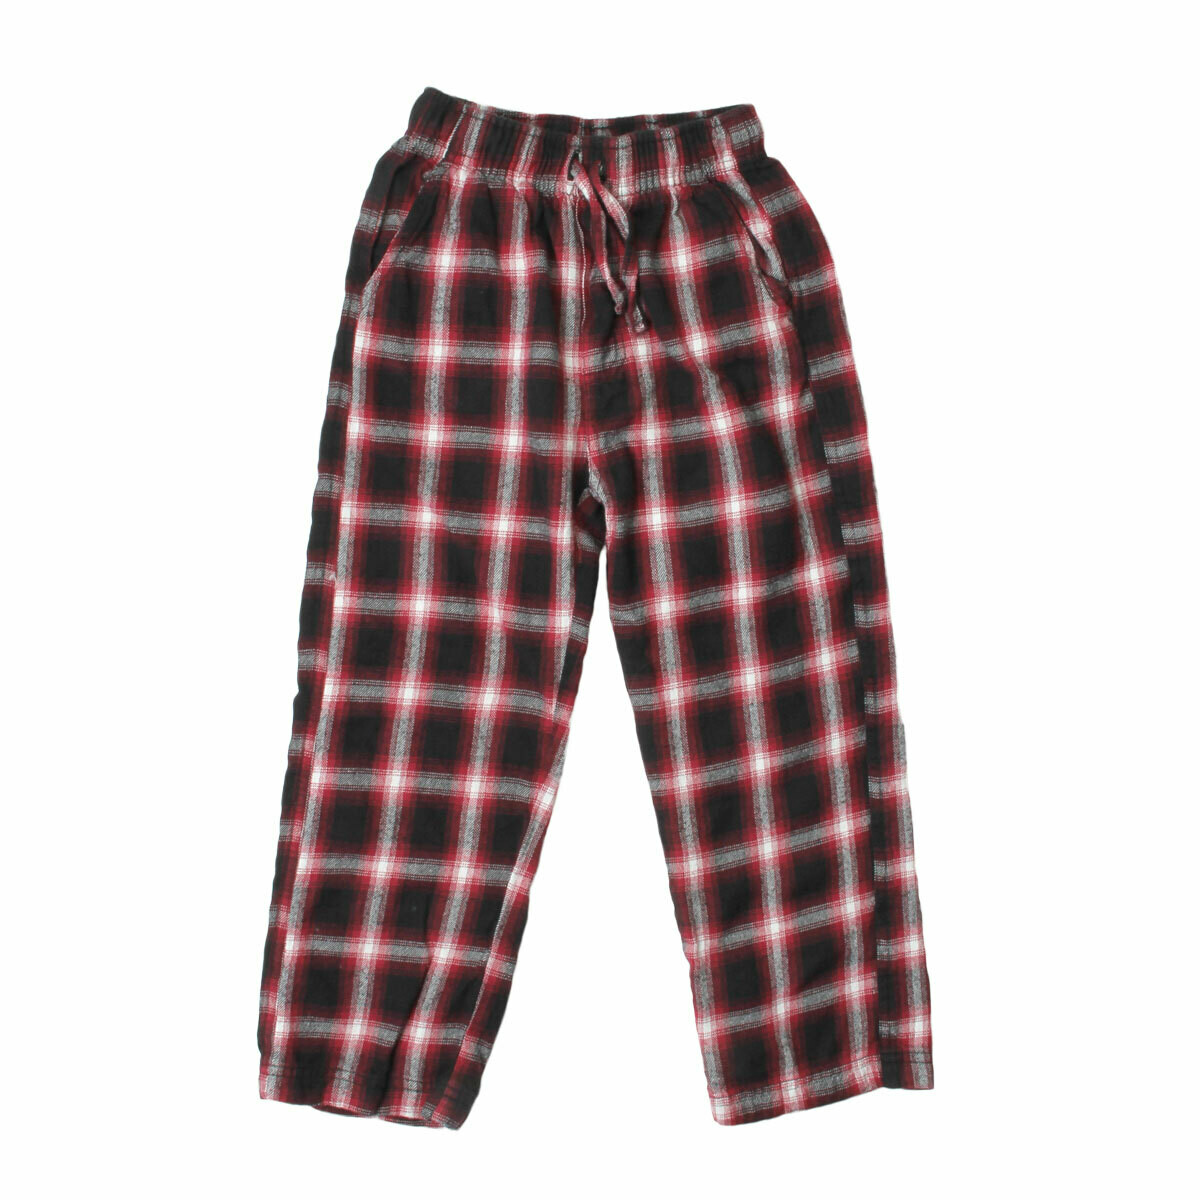 Boys Plaid Red Black Light Flannel Pajama Lounge Pants Size 2-14